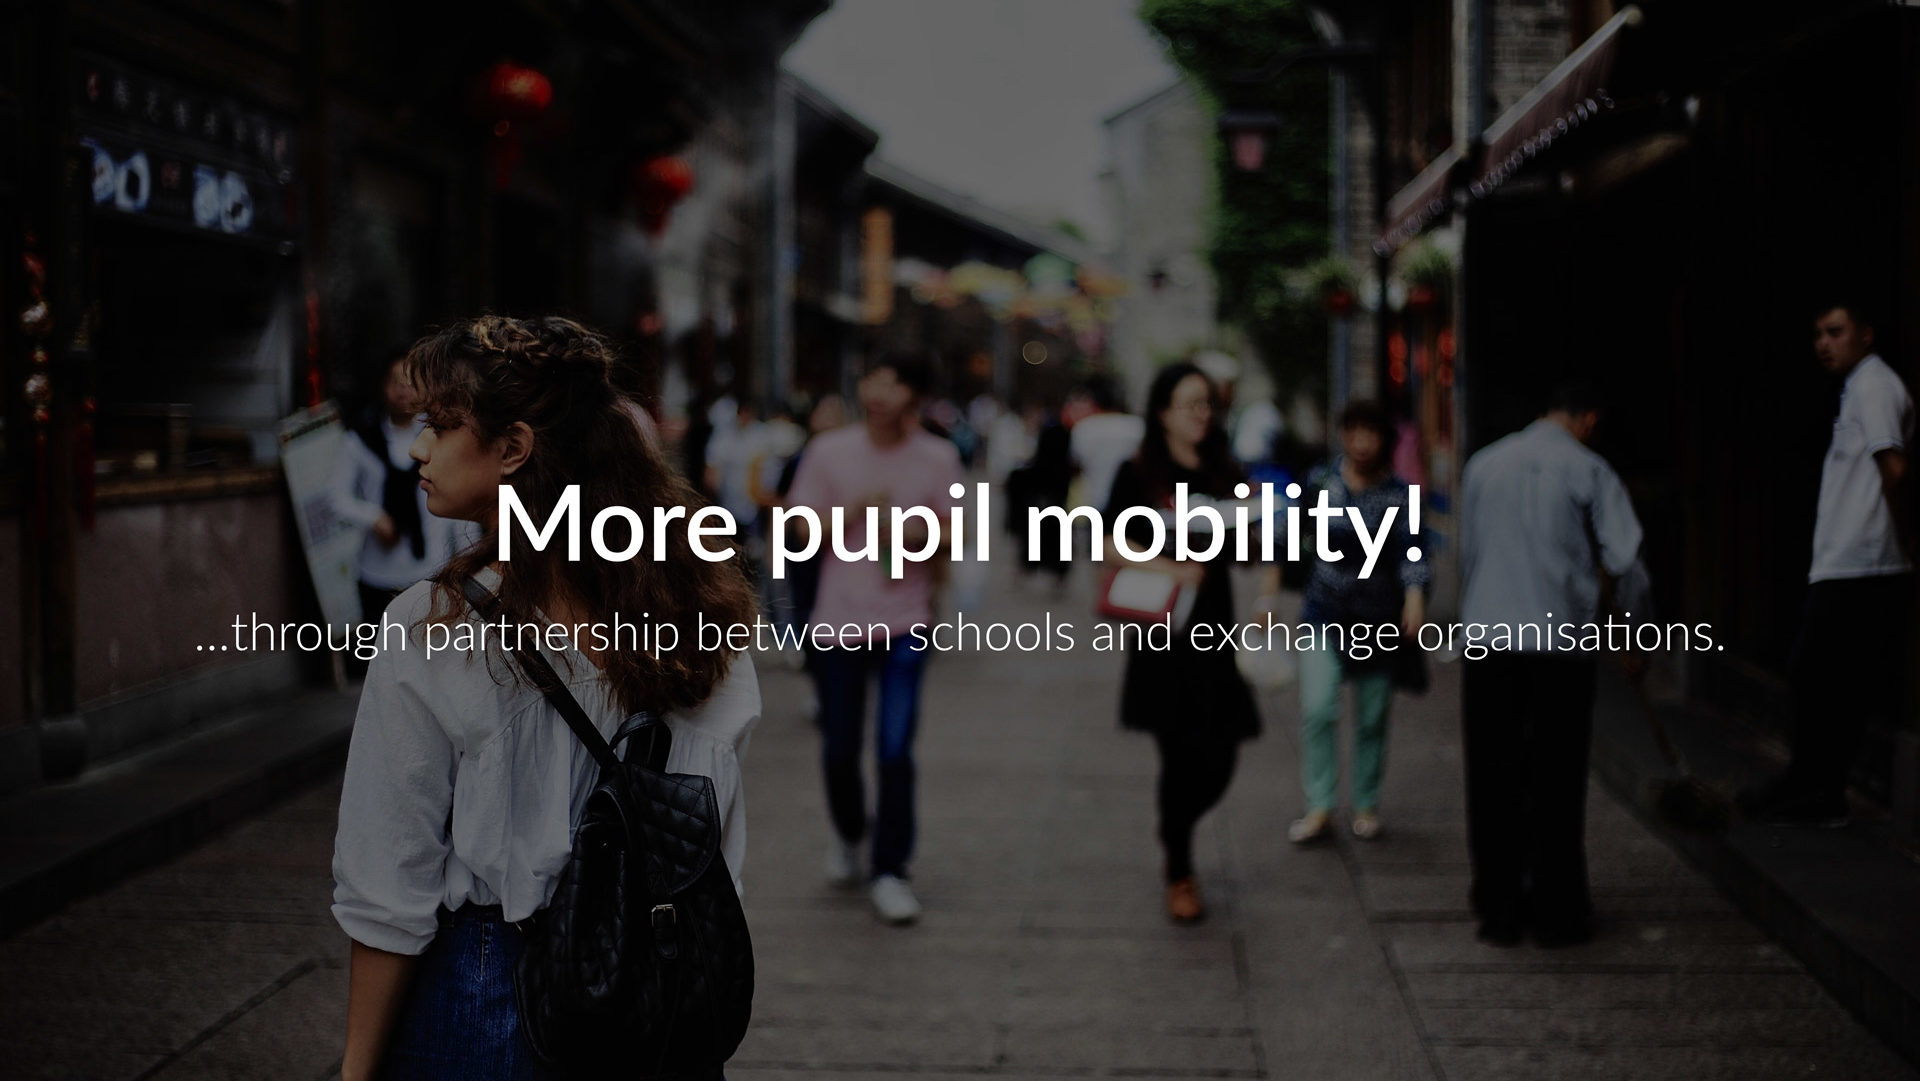 Pupil Mobility